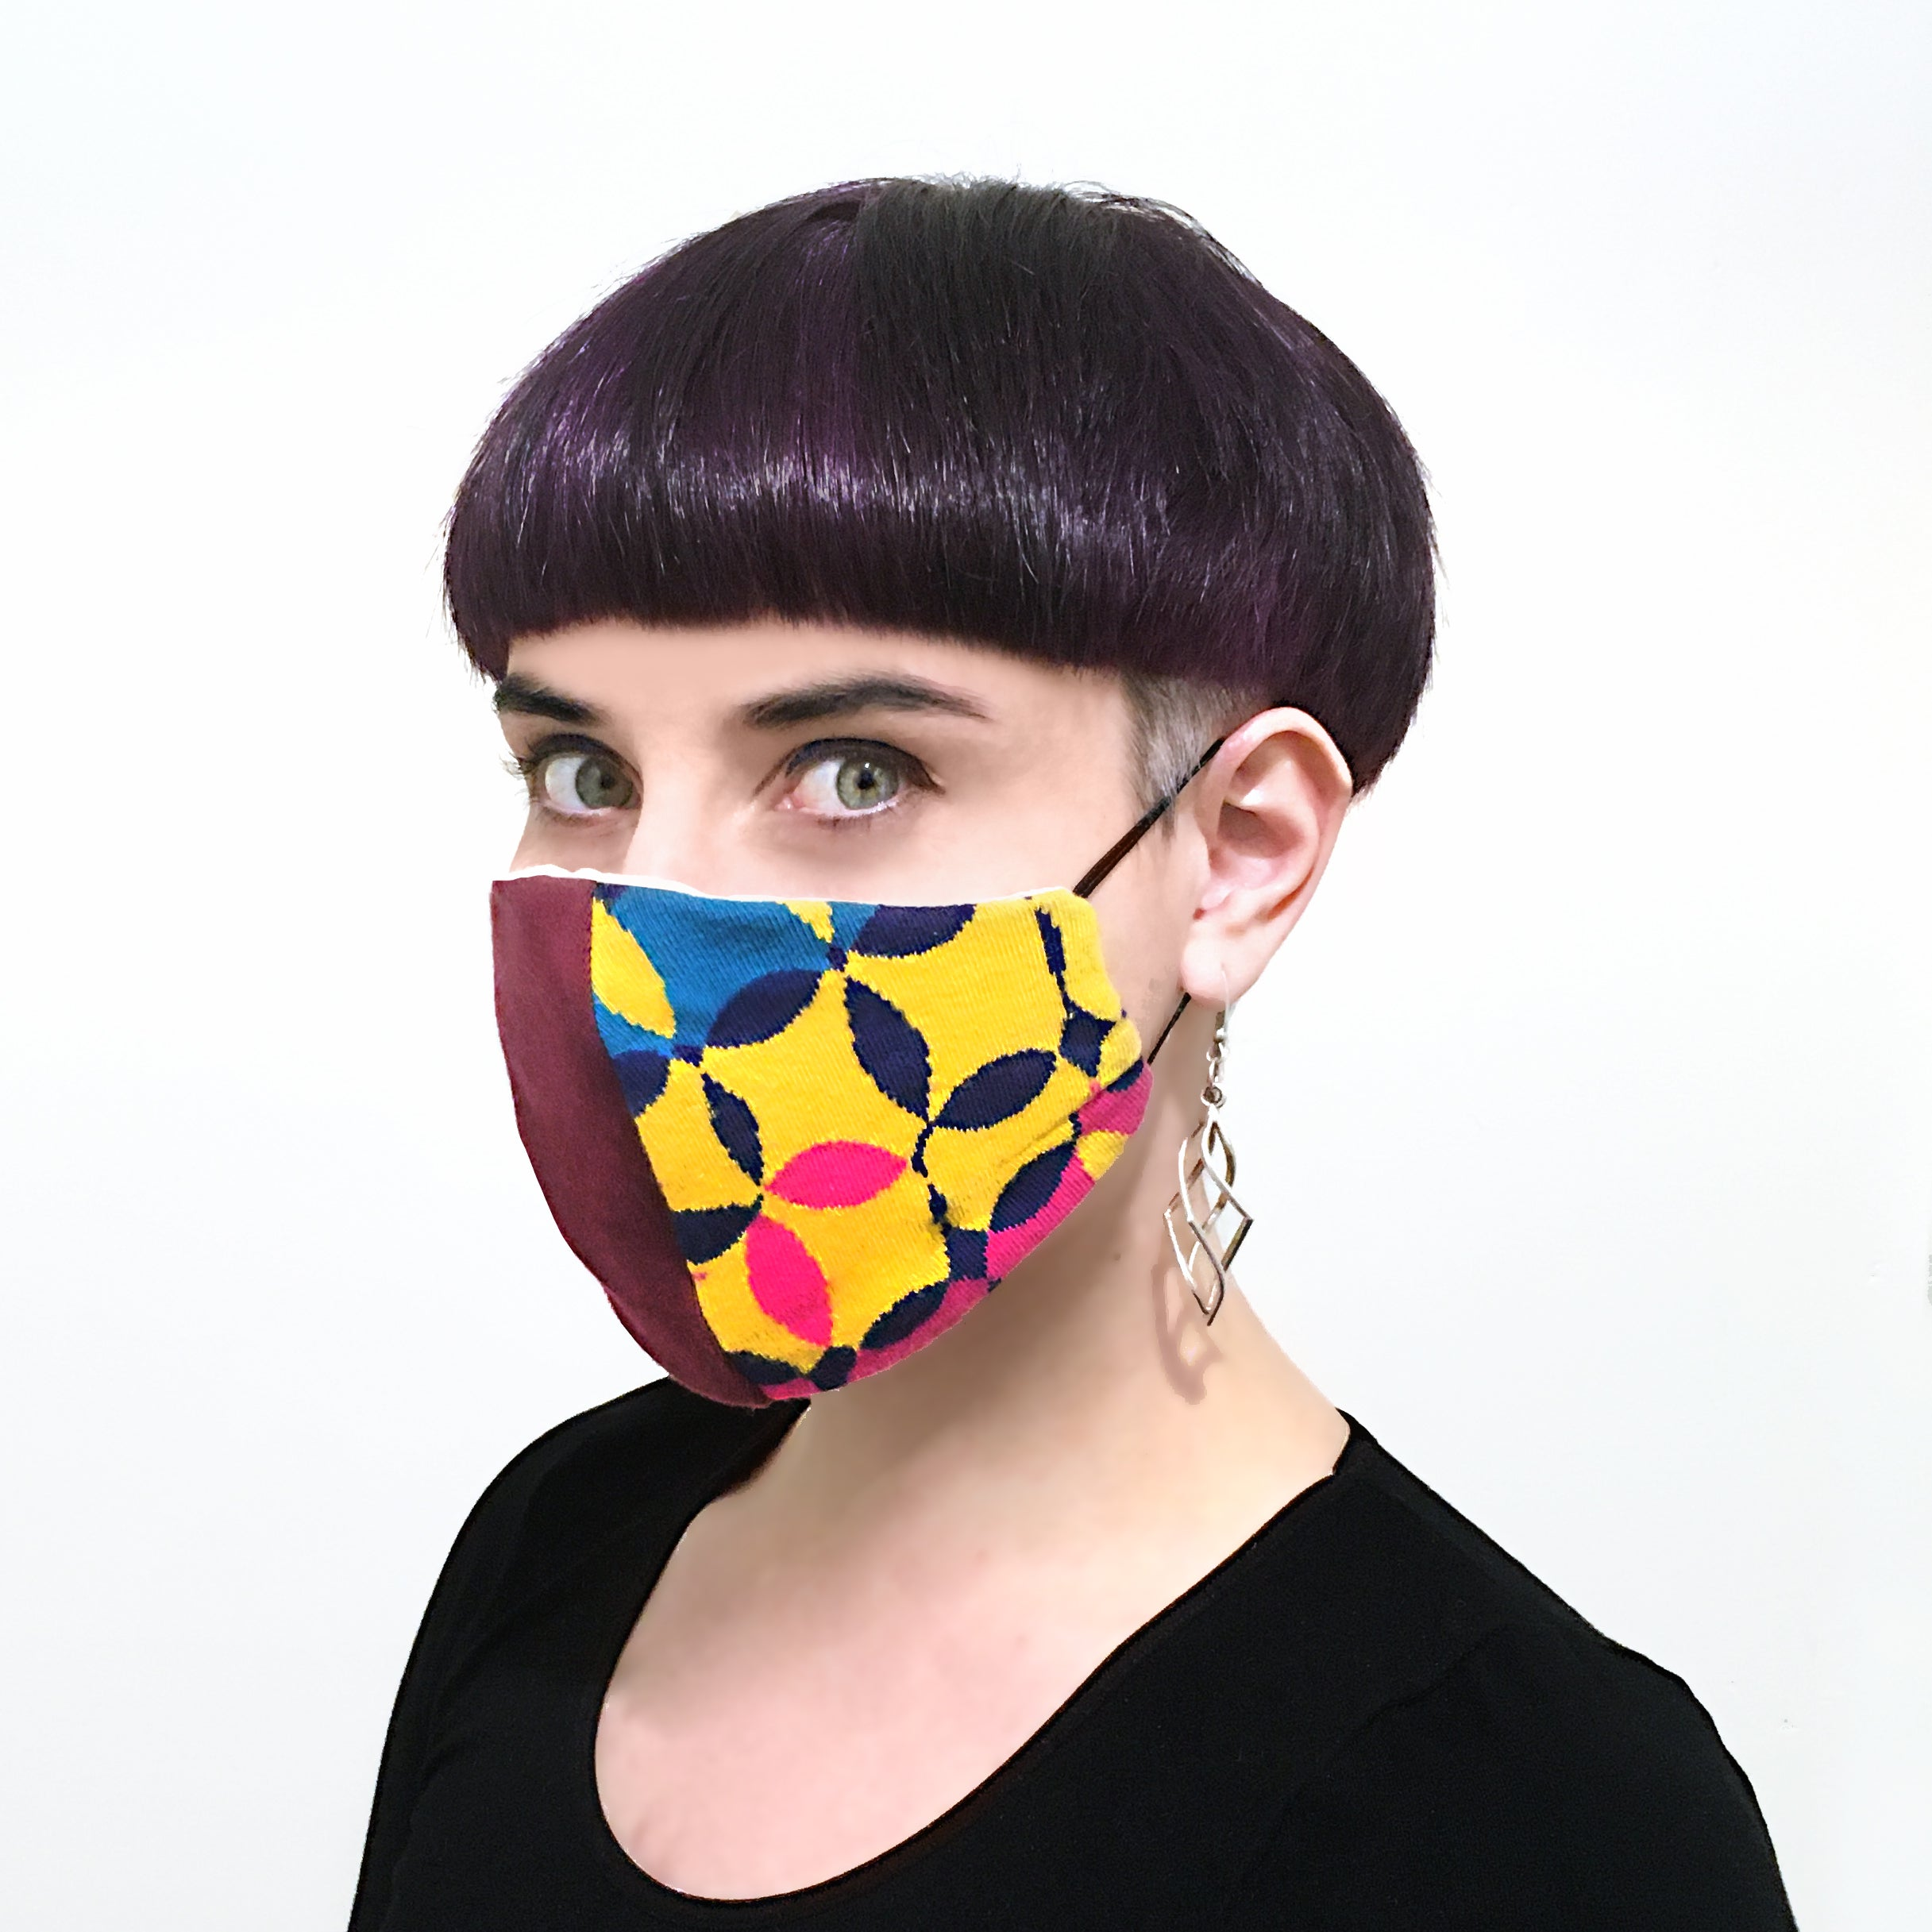 Ballonet Socks Mask - TV 1